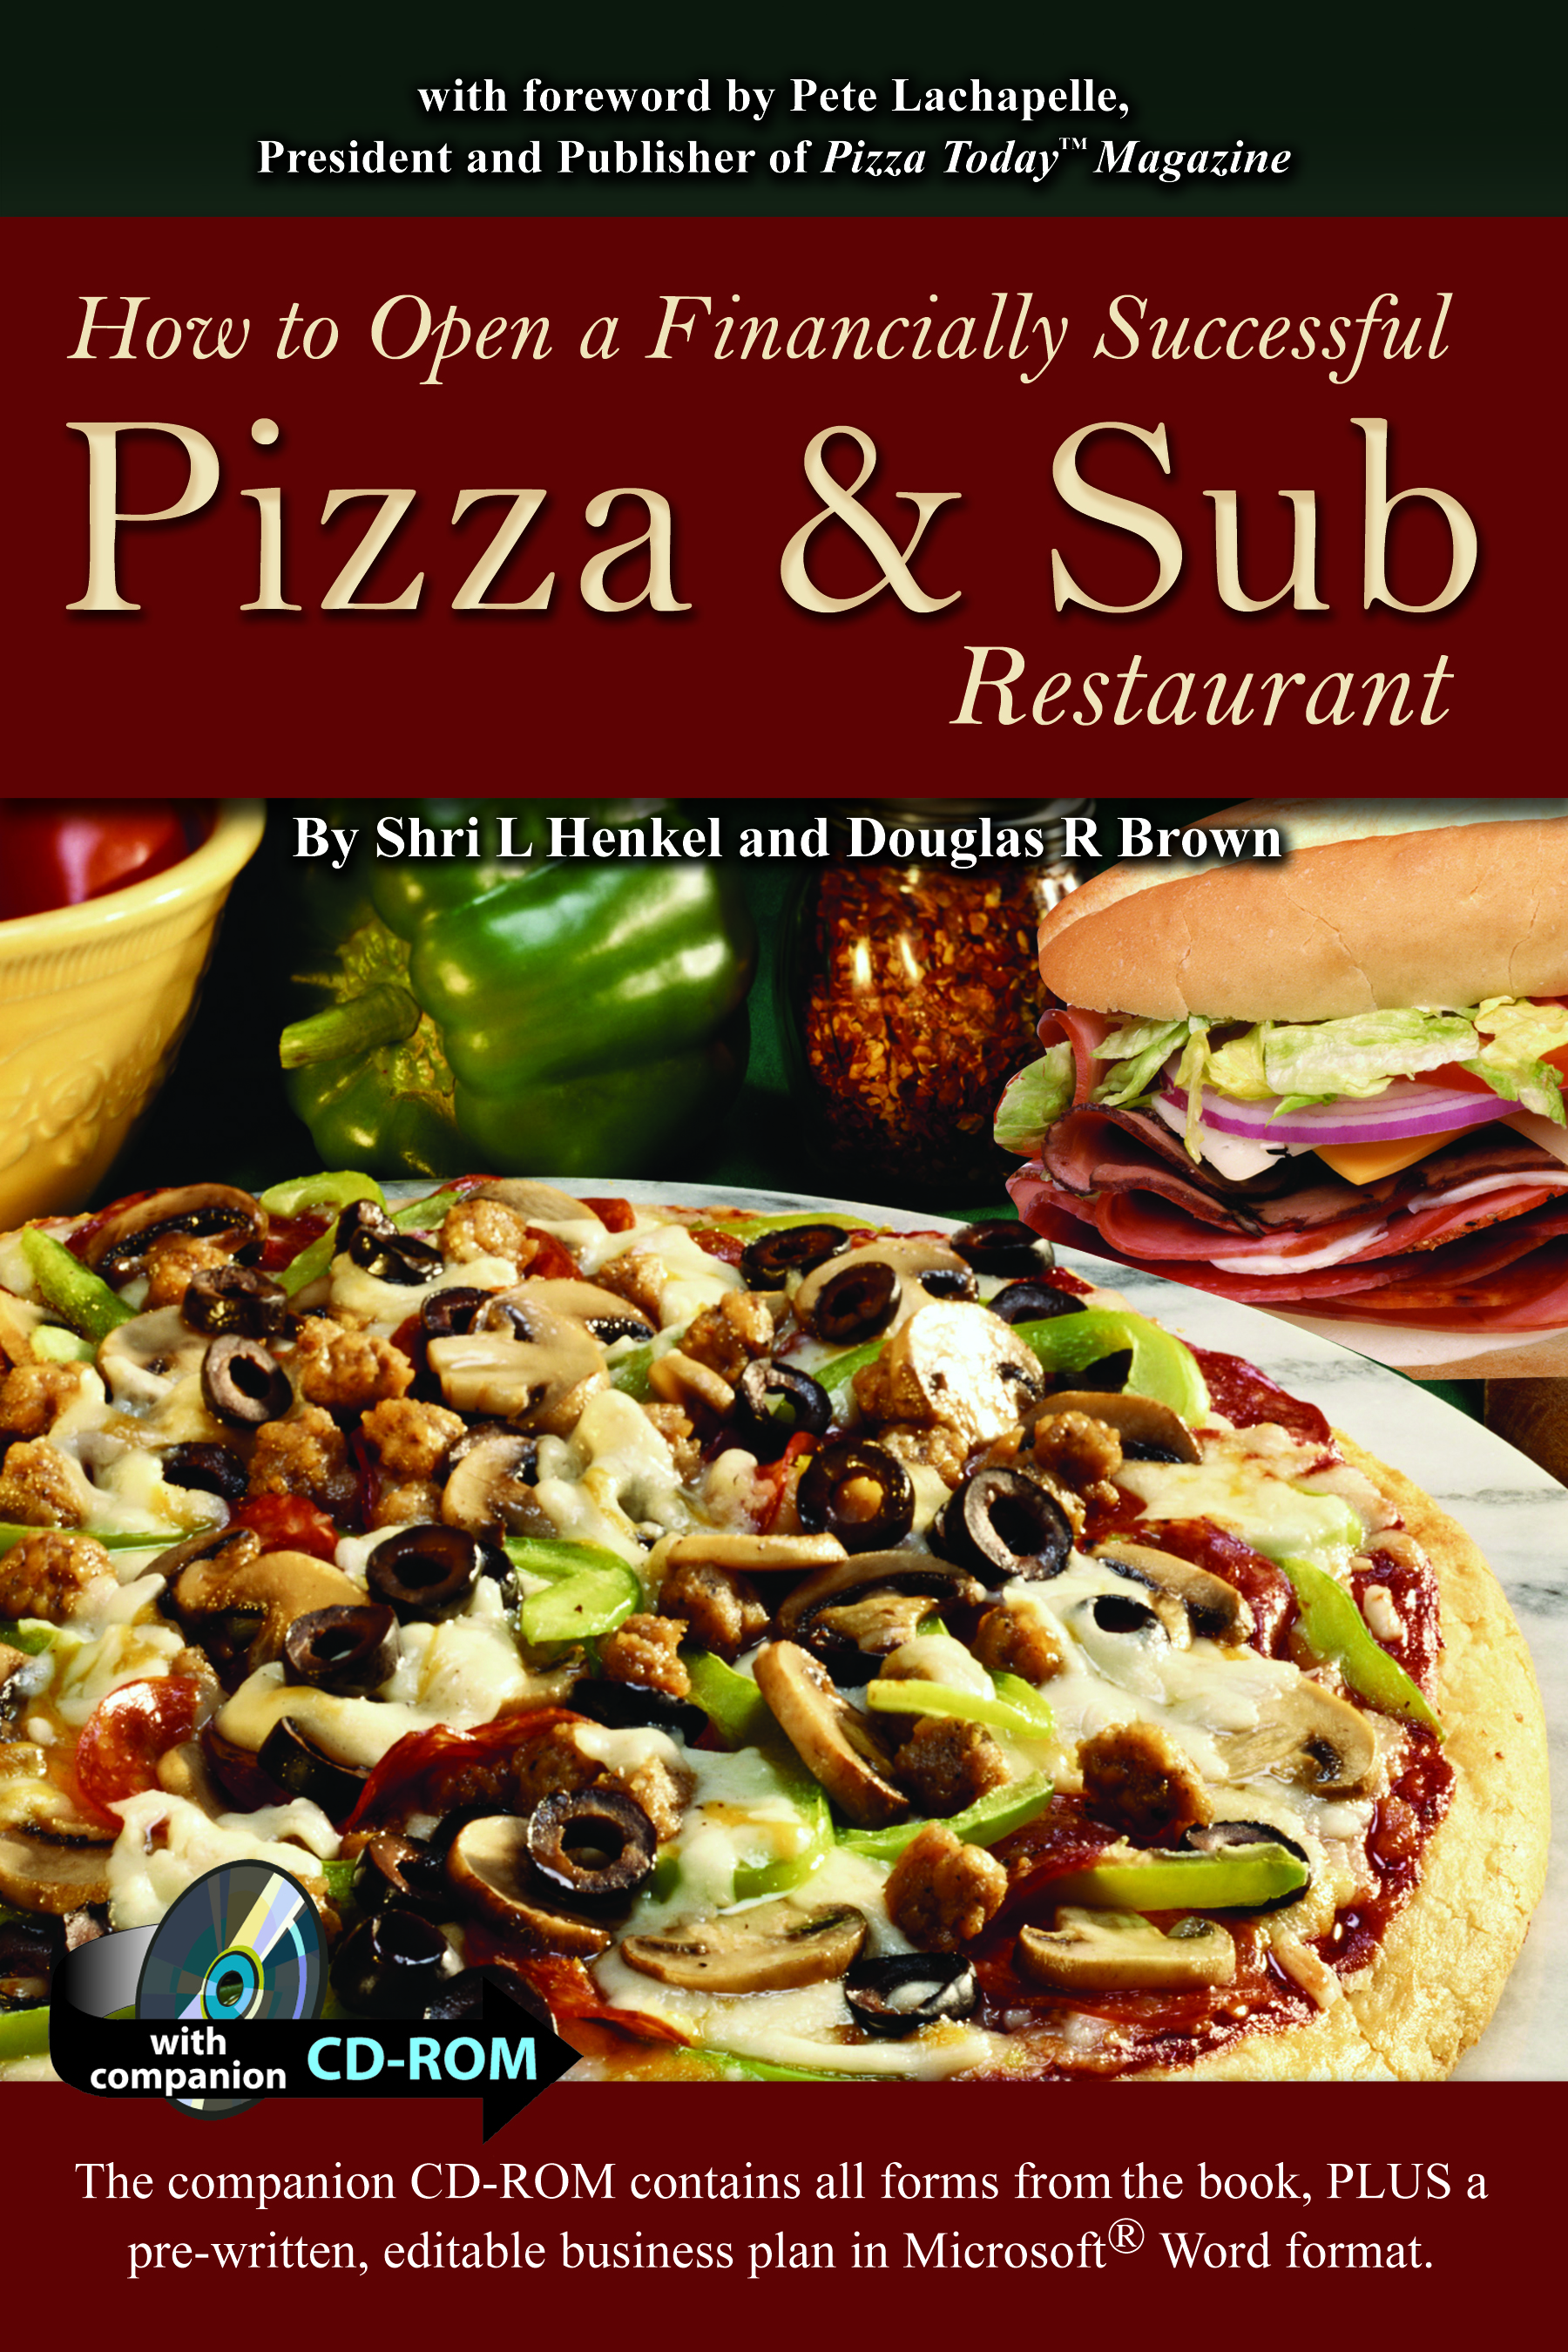 How to Open a Financially Successful Pizza & Sub Restaurant With Companion CD-ROM